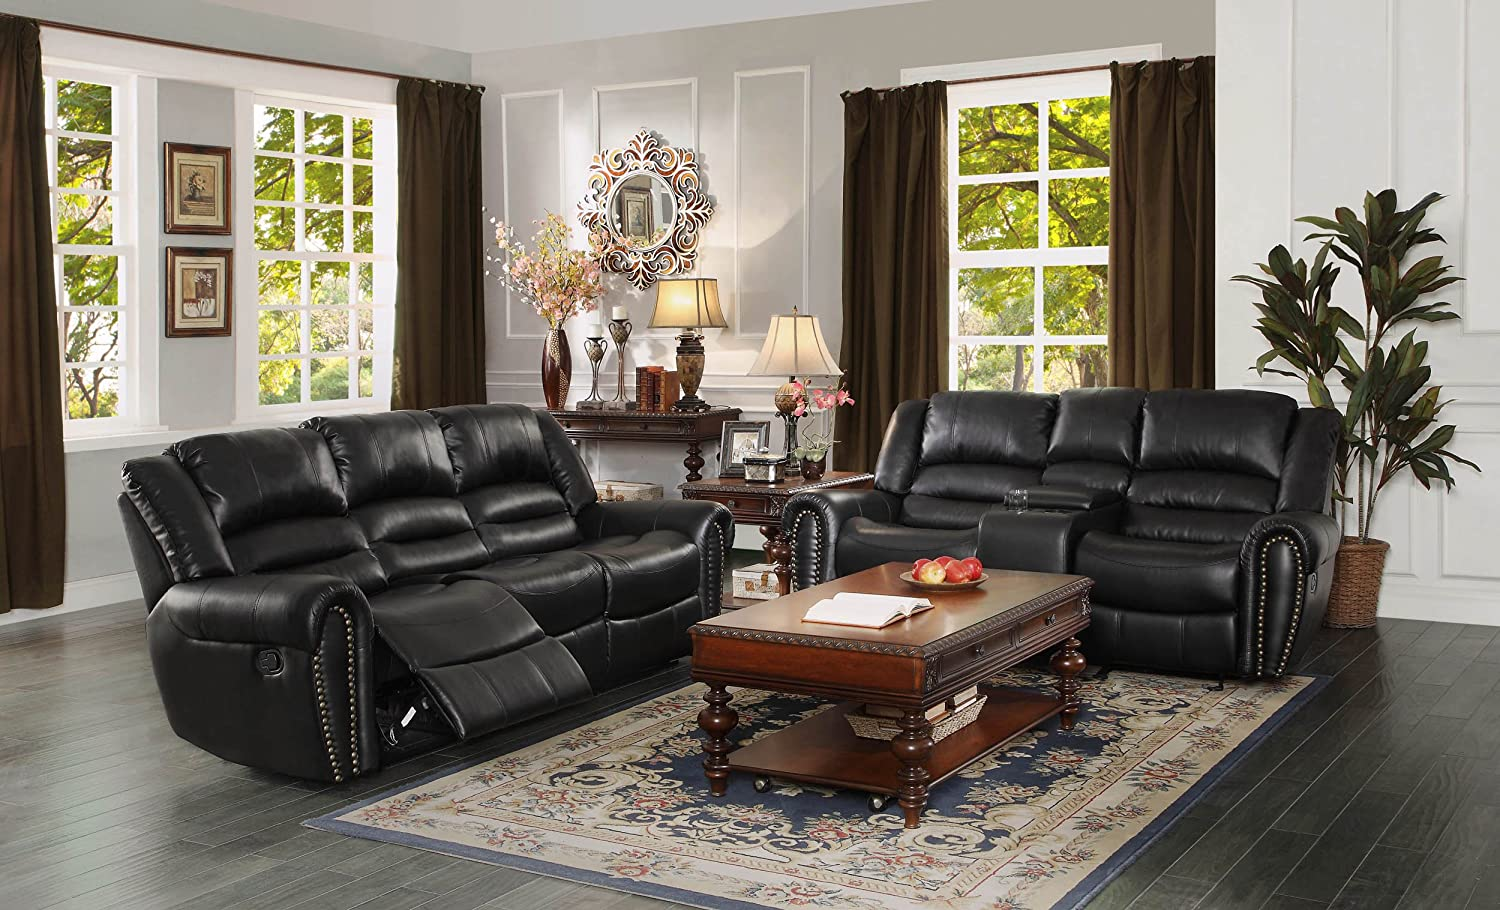 Amazon homelegance 9668blk 3 double reclining sofa black amazon homelegance 9668blk 3 double reclining sofa black bonded leather kitchen dining geotapseo Image collections